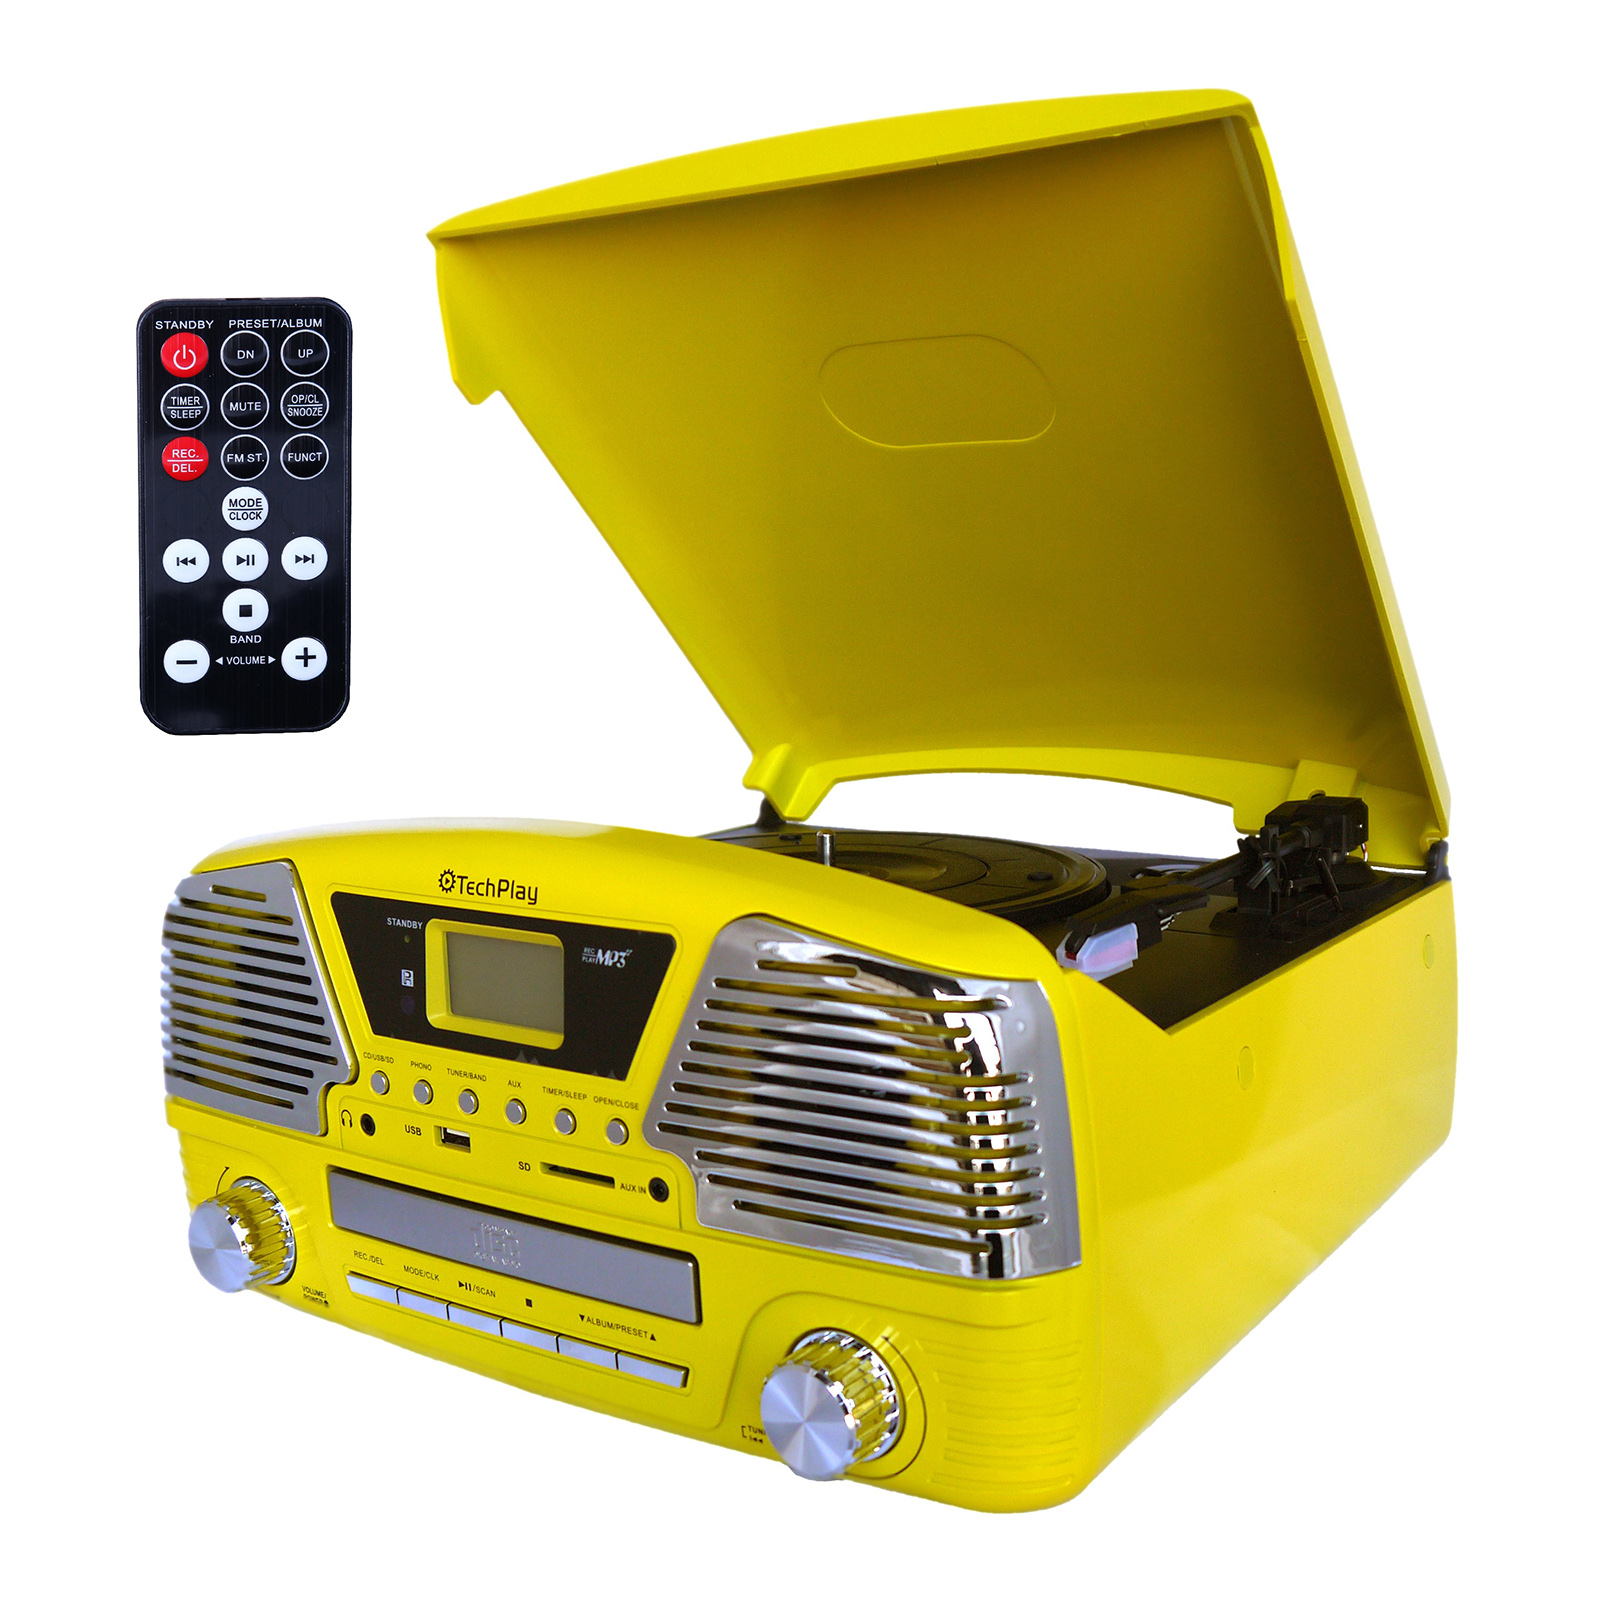 TechPlay 3 Speed Turntable, Programmable MP3 CD Player, USB/SD, Radio and Remote Controll in Yellow